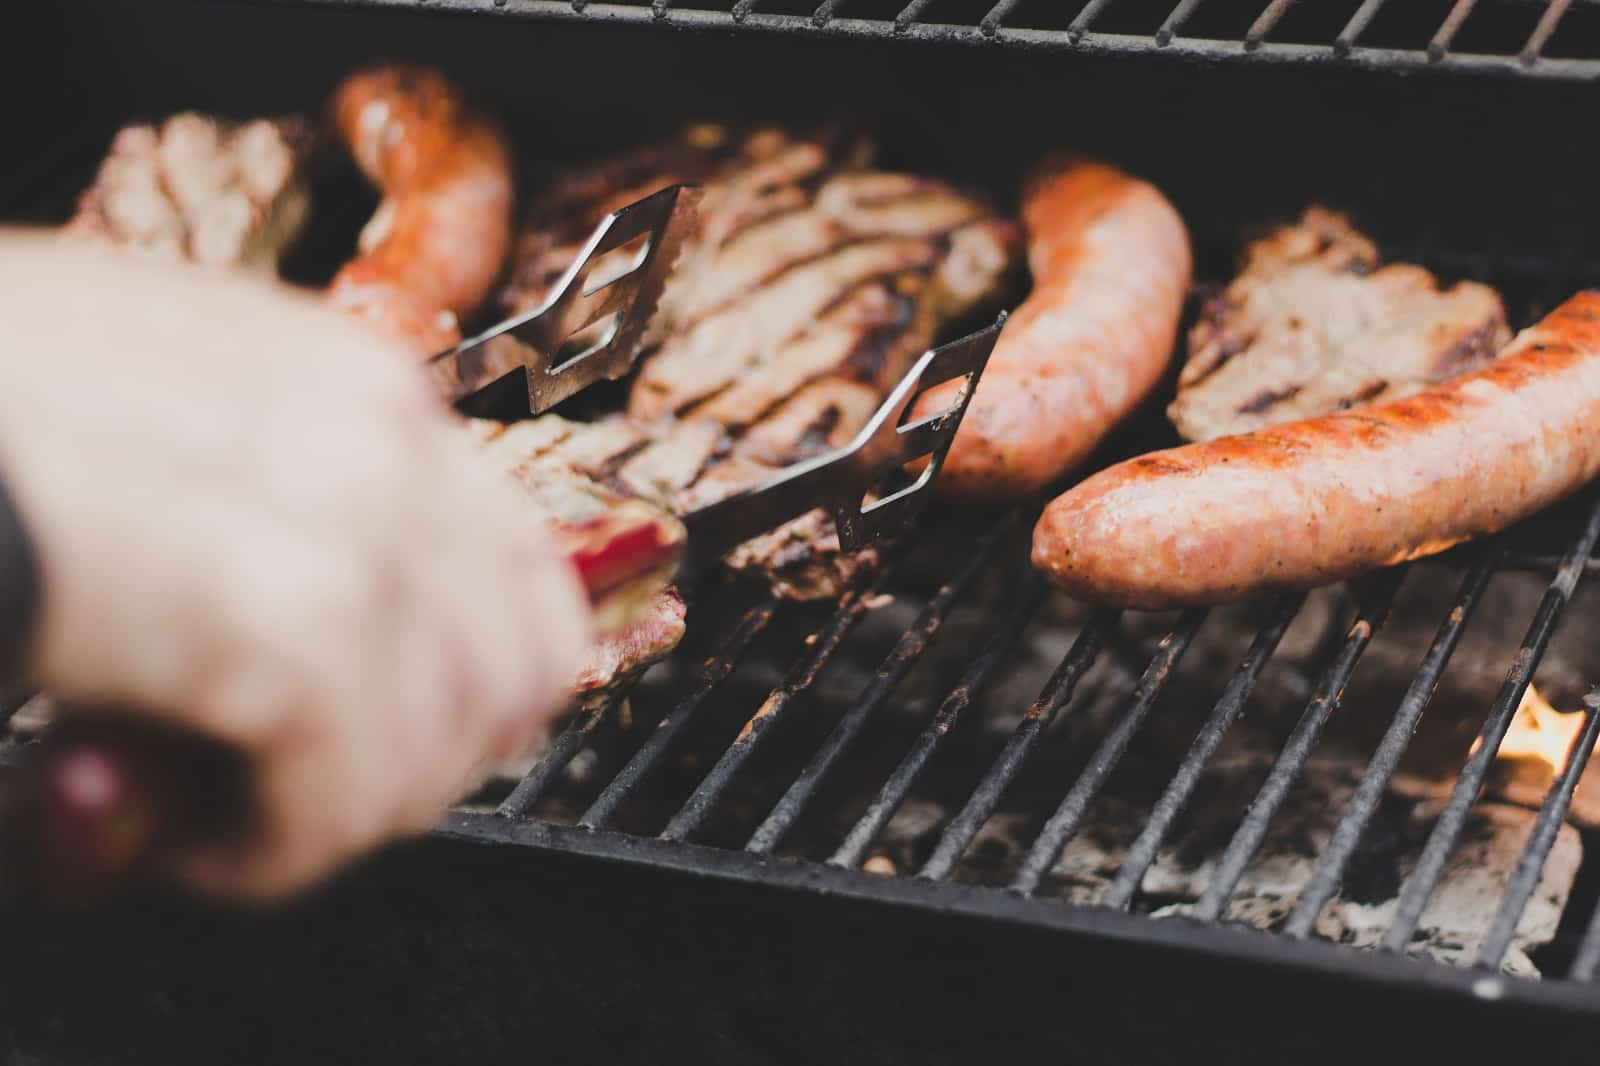 hot dogs and chicken on a grill